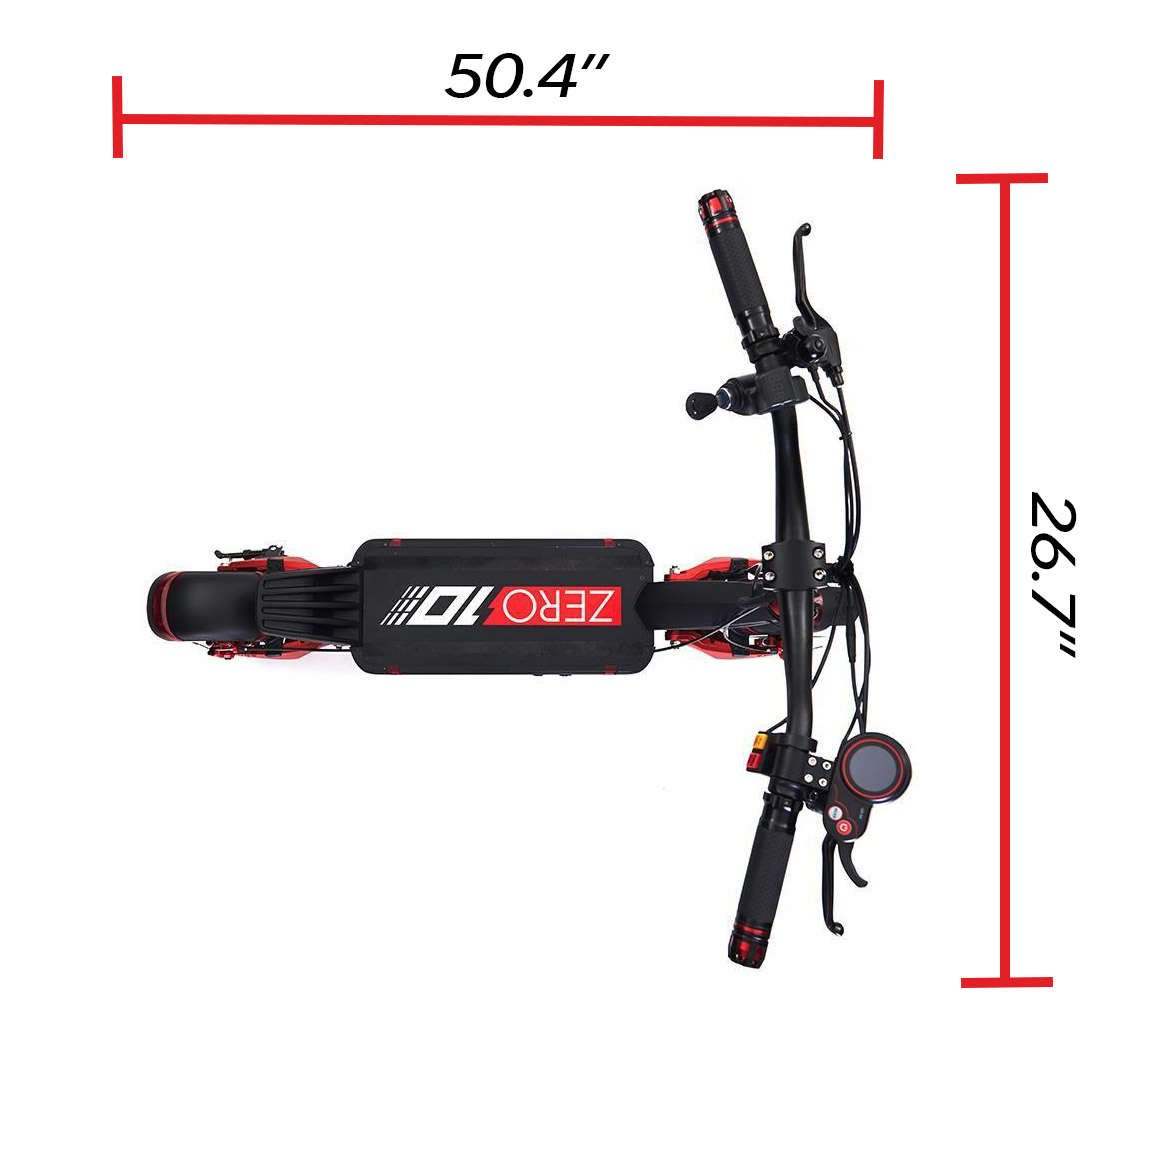 zero 10 electric scooter handlebar width 49.6 inches